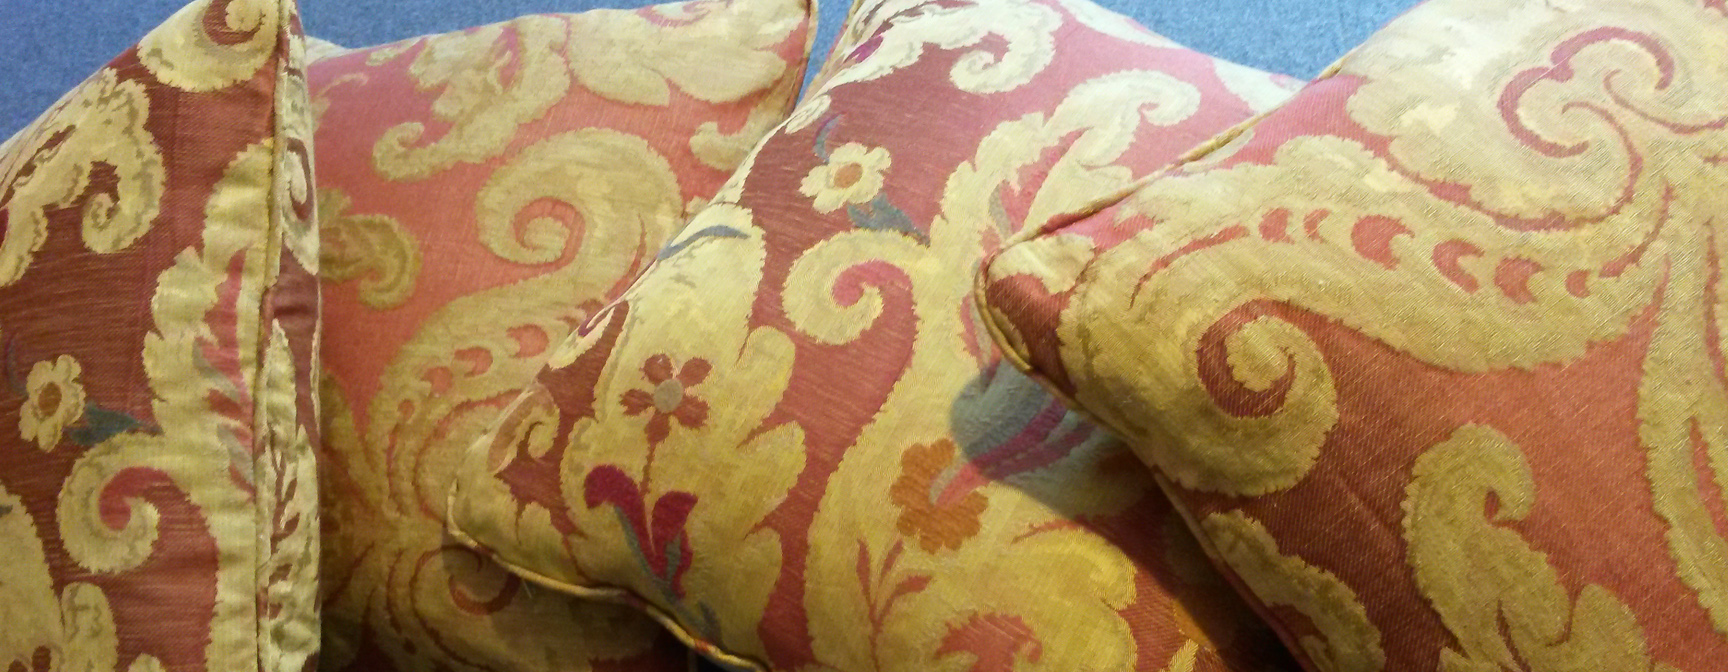 Piped and zipped Zoffany damask cushions - bespoke Gloucestershire